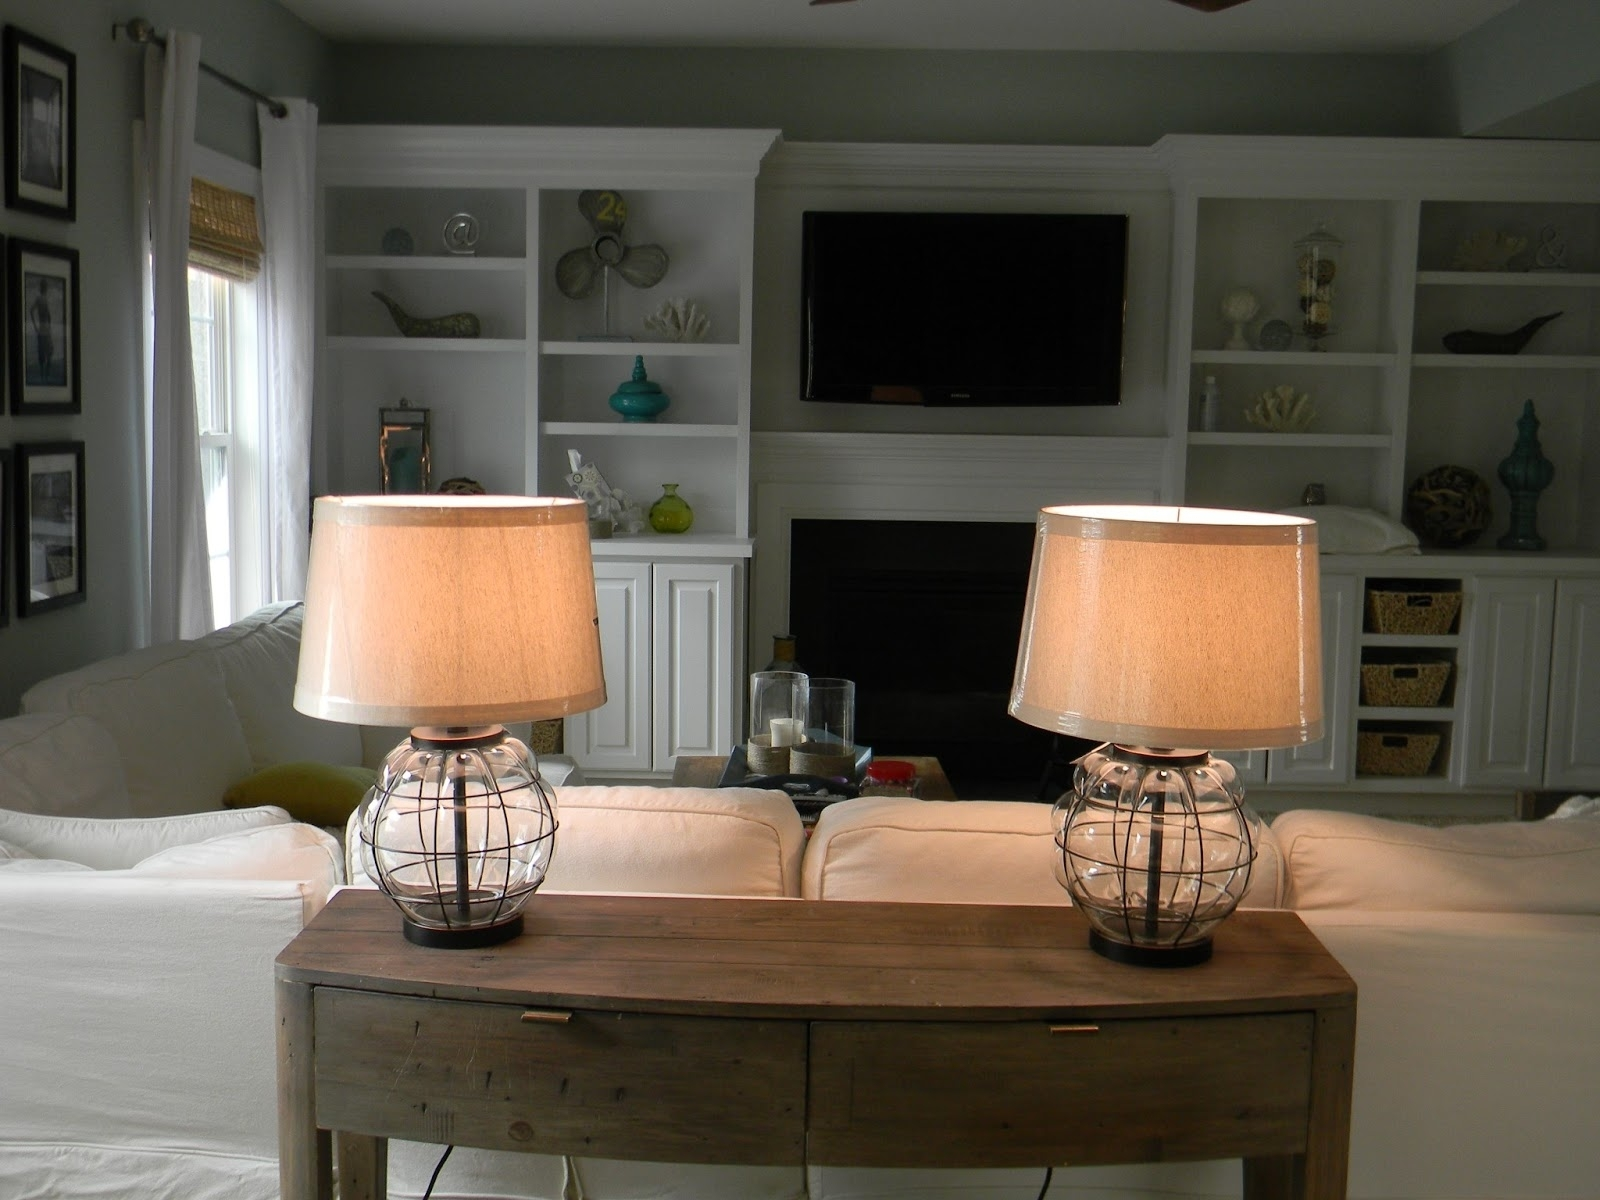 Top 40 Dandy Pottery Barn Spotlight Lamp Table Lamps Reading Light With Pottery Barn Table Lamps For Living Room (View 15 of 15)